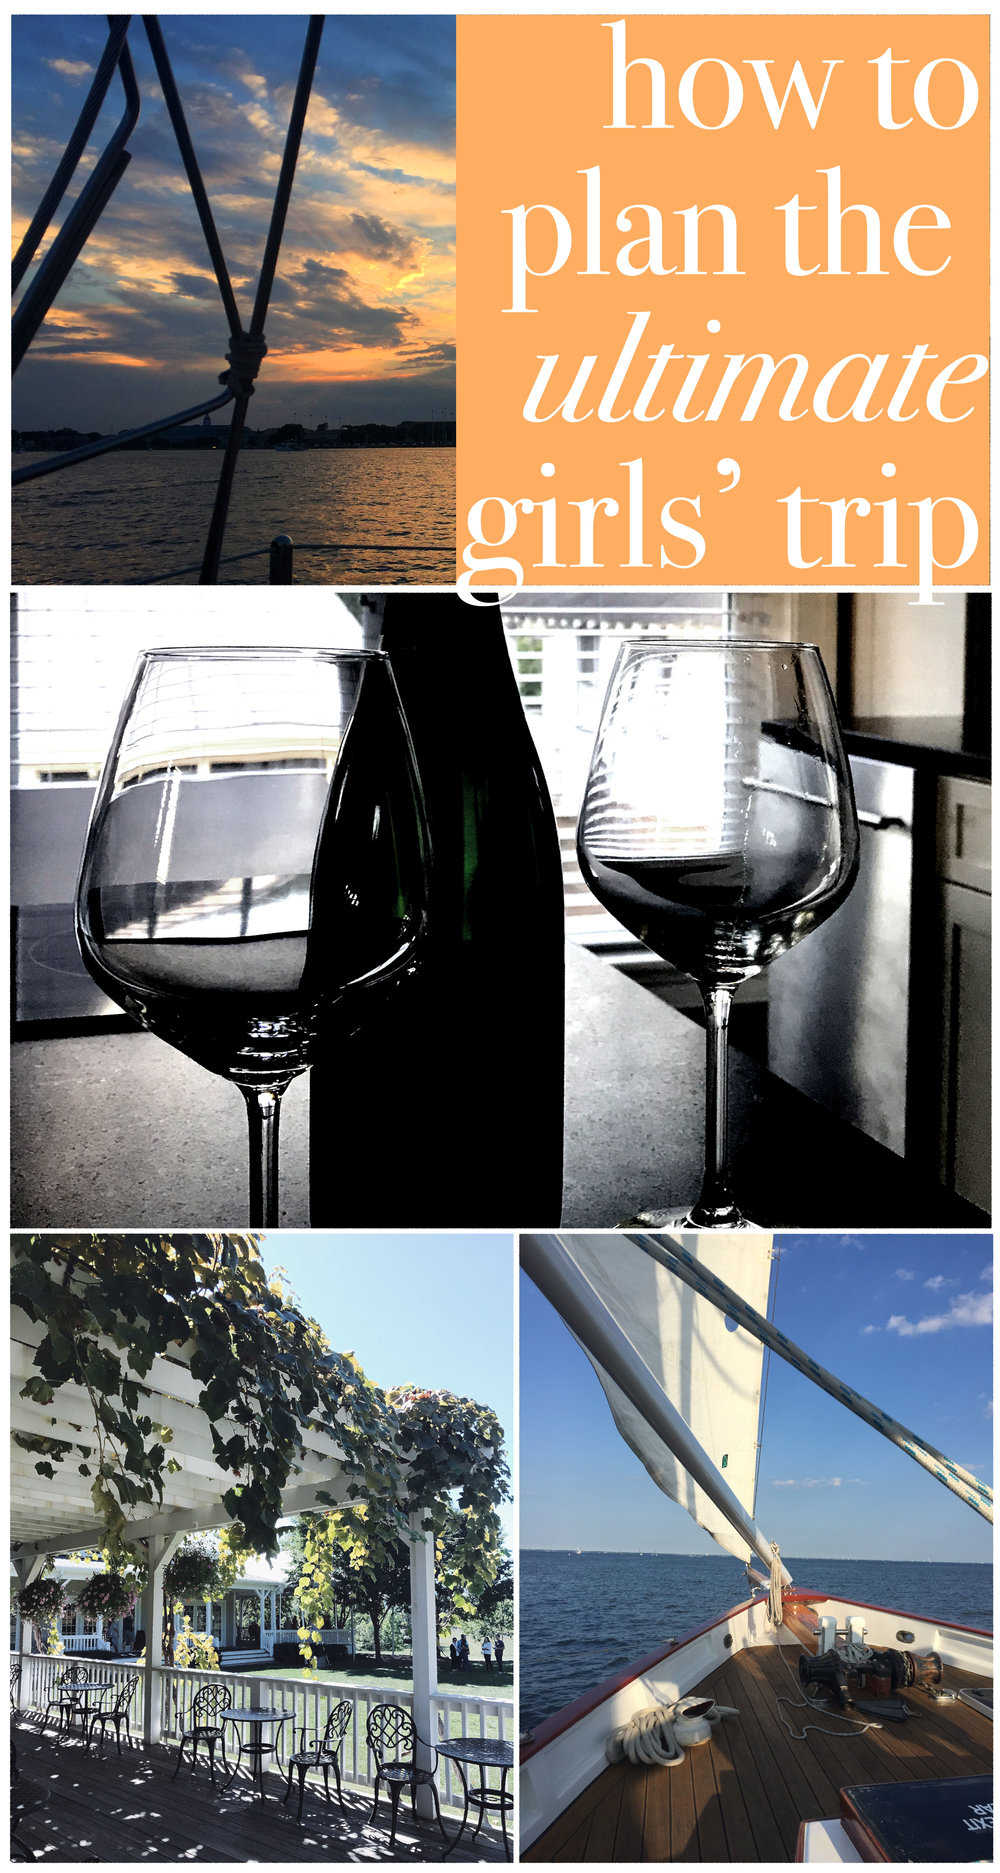 Ultimate Girls' Trip.jpg